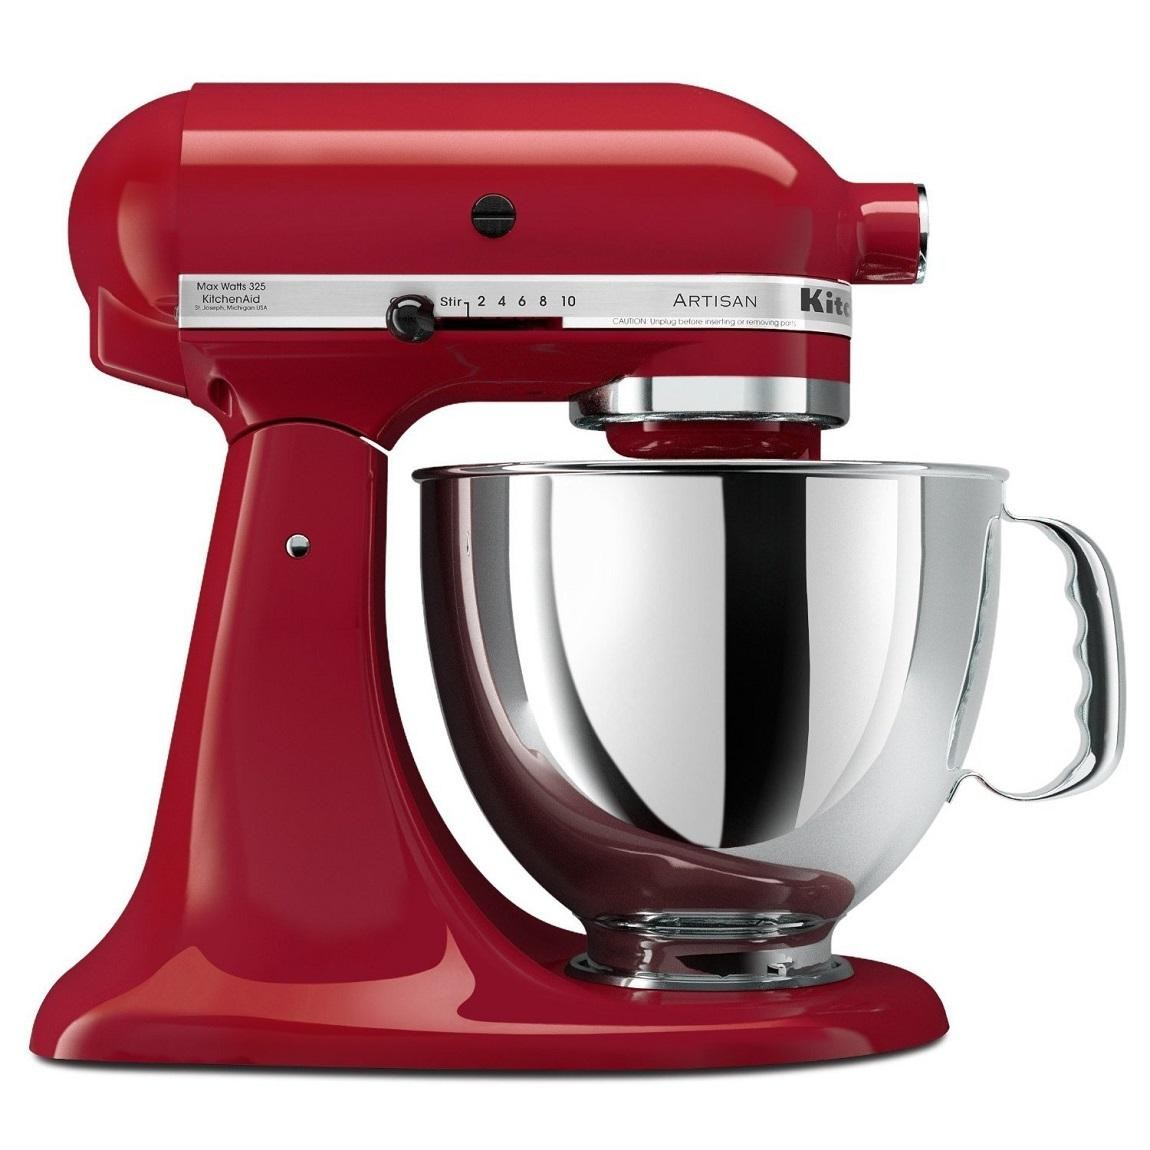 kitchenaid-5KSM150PSBER-side.jpg